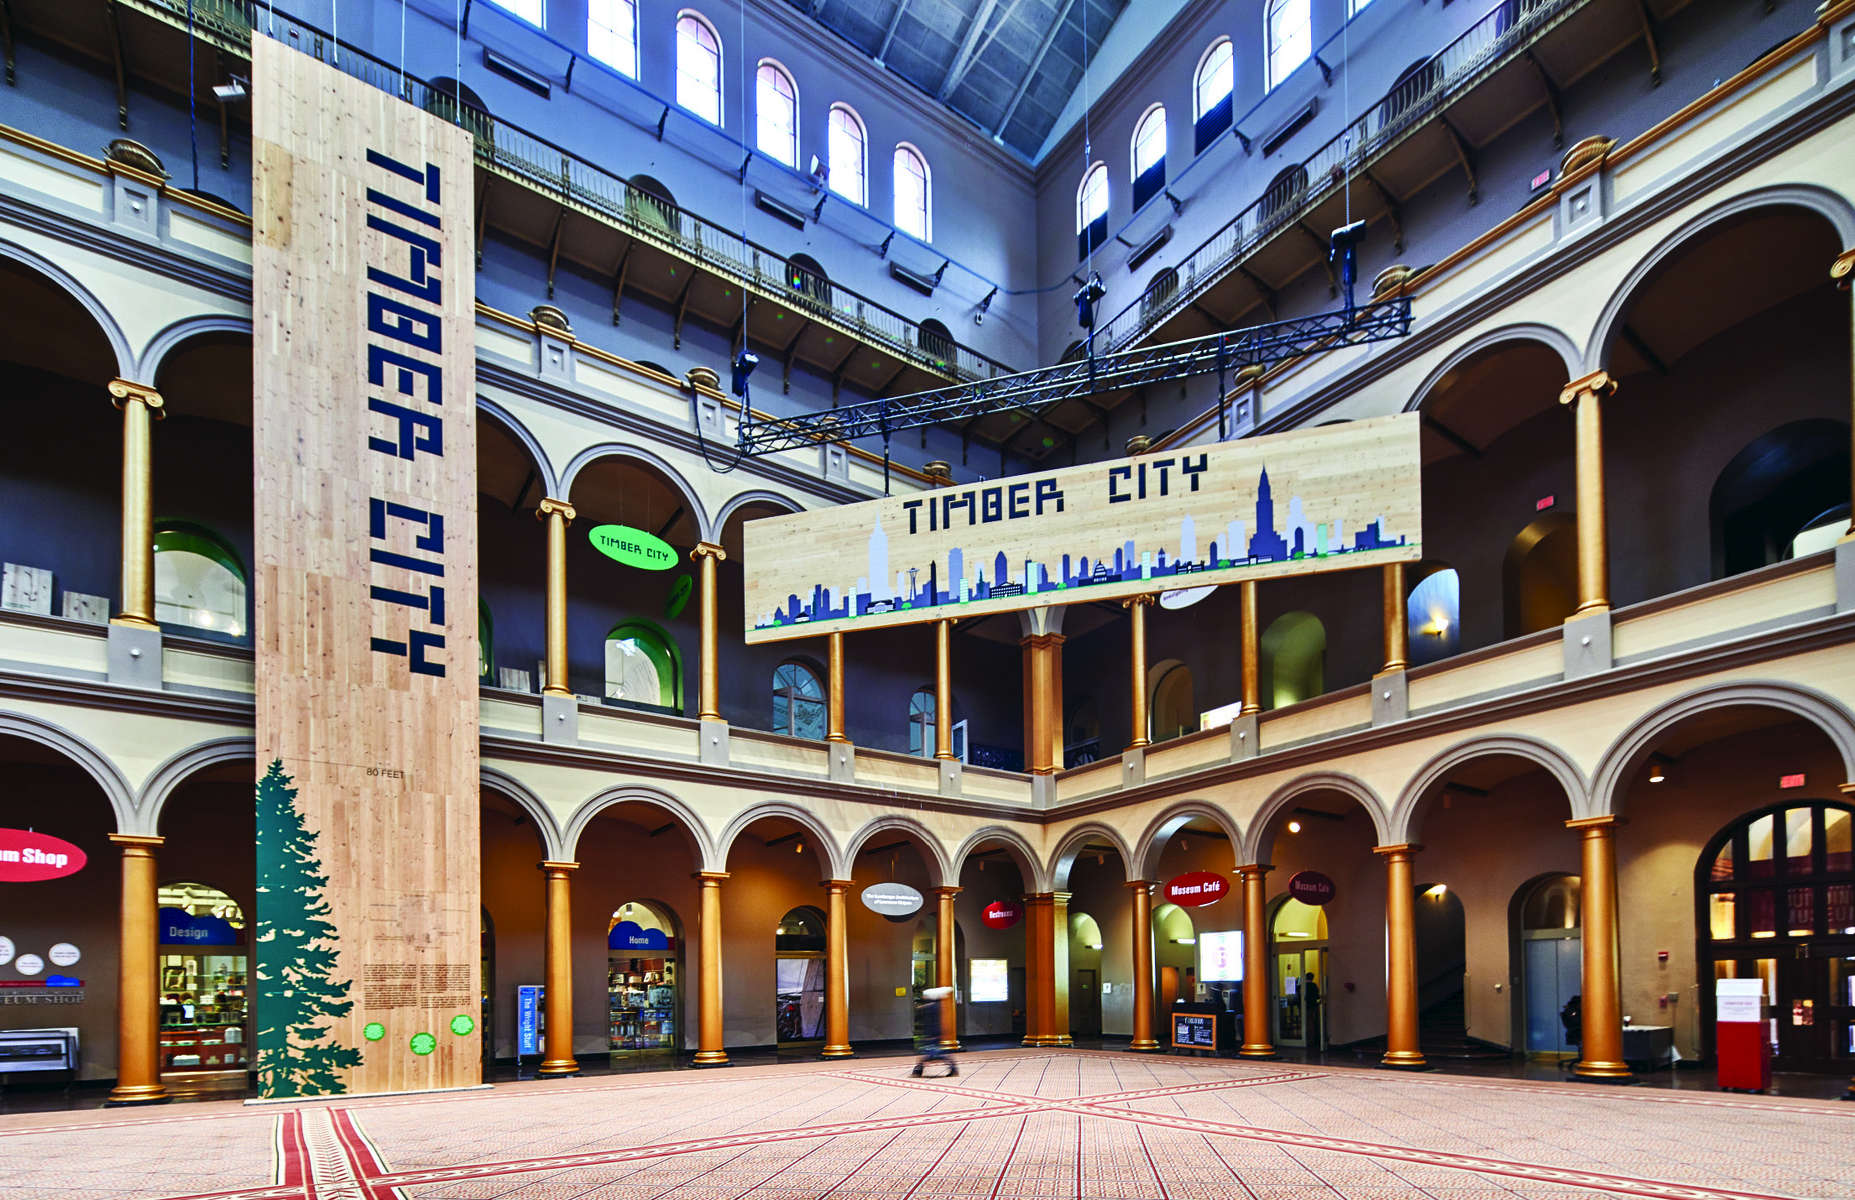 IKD has been hired to curate and design the Timber CIty Exhibition at the National Building Museum in Washington, DC Now open. Photo by Benjamin Kou